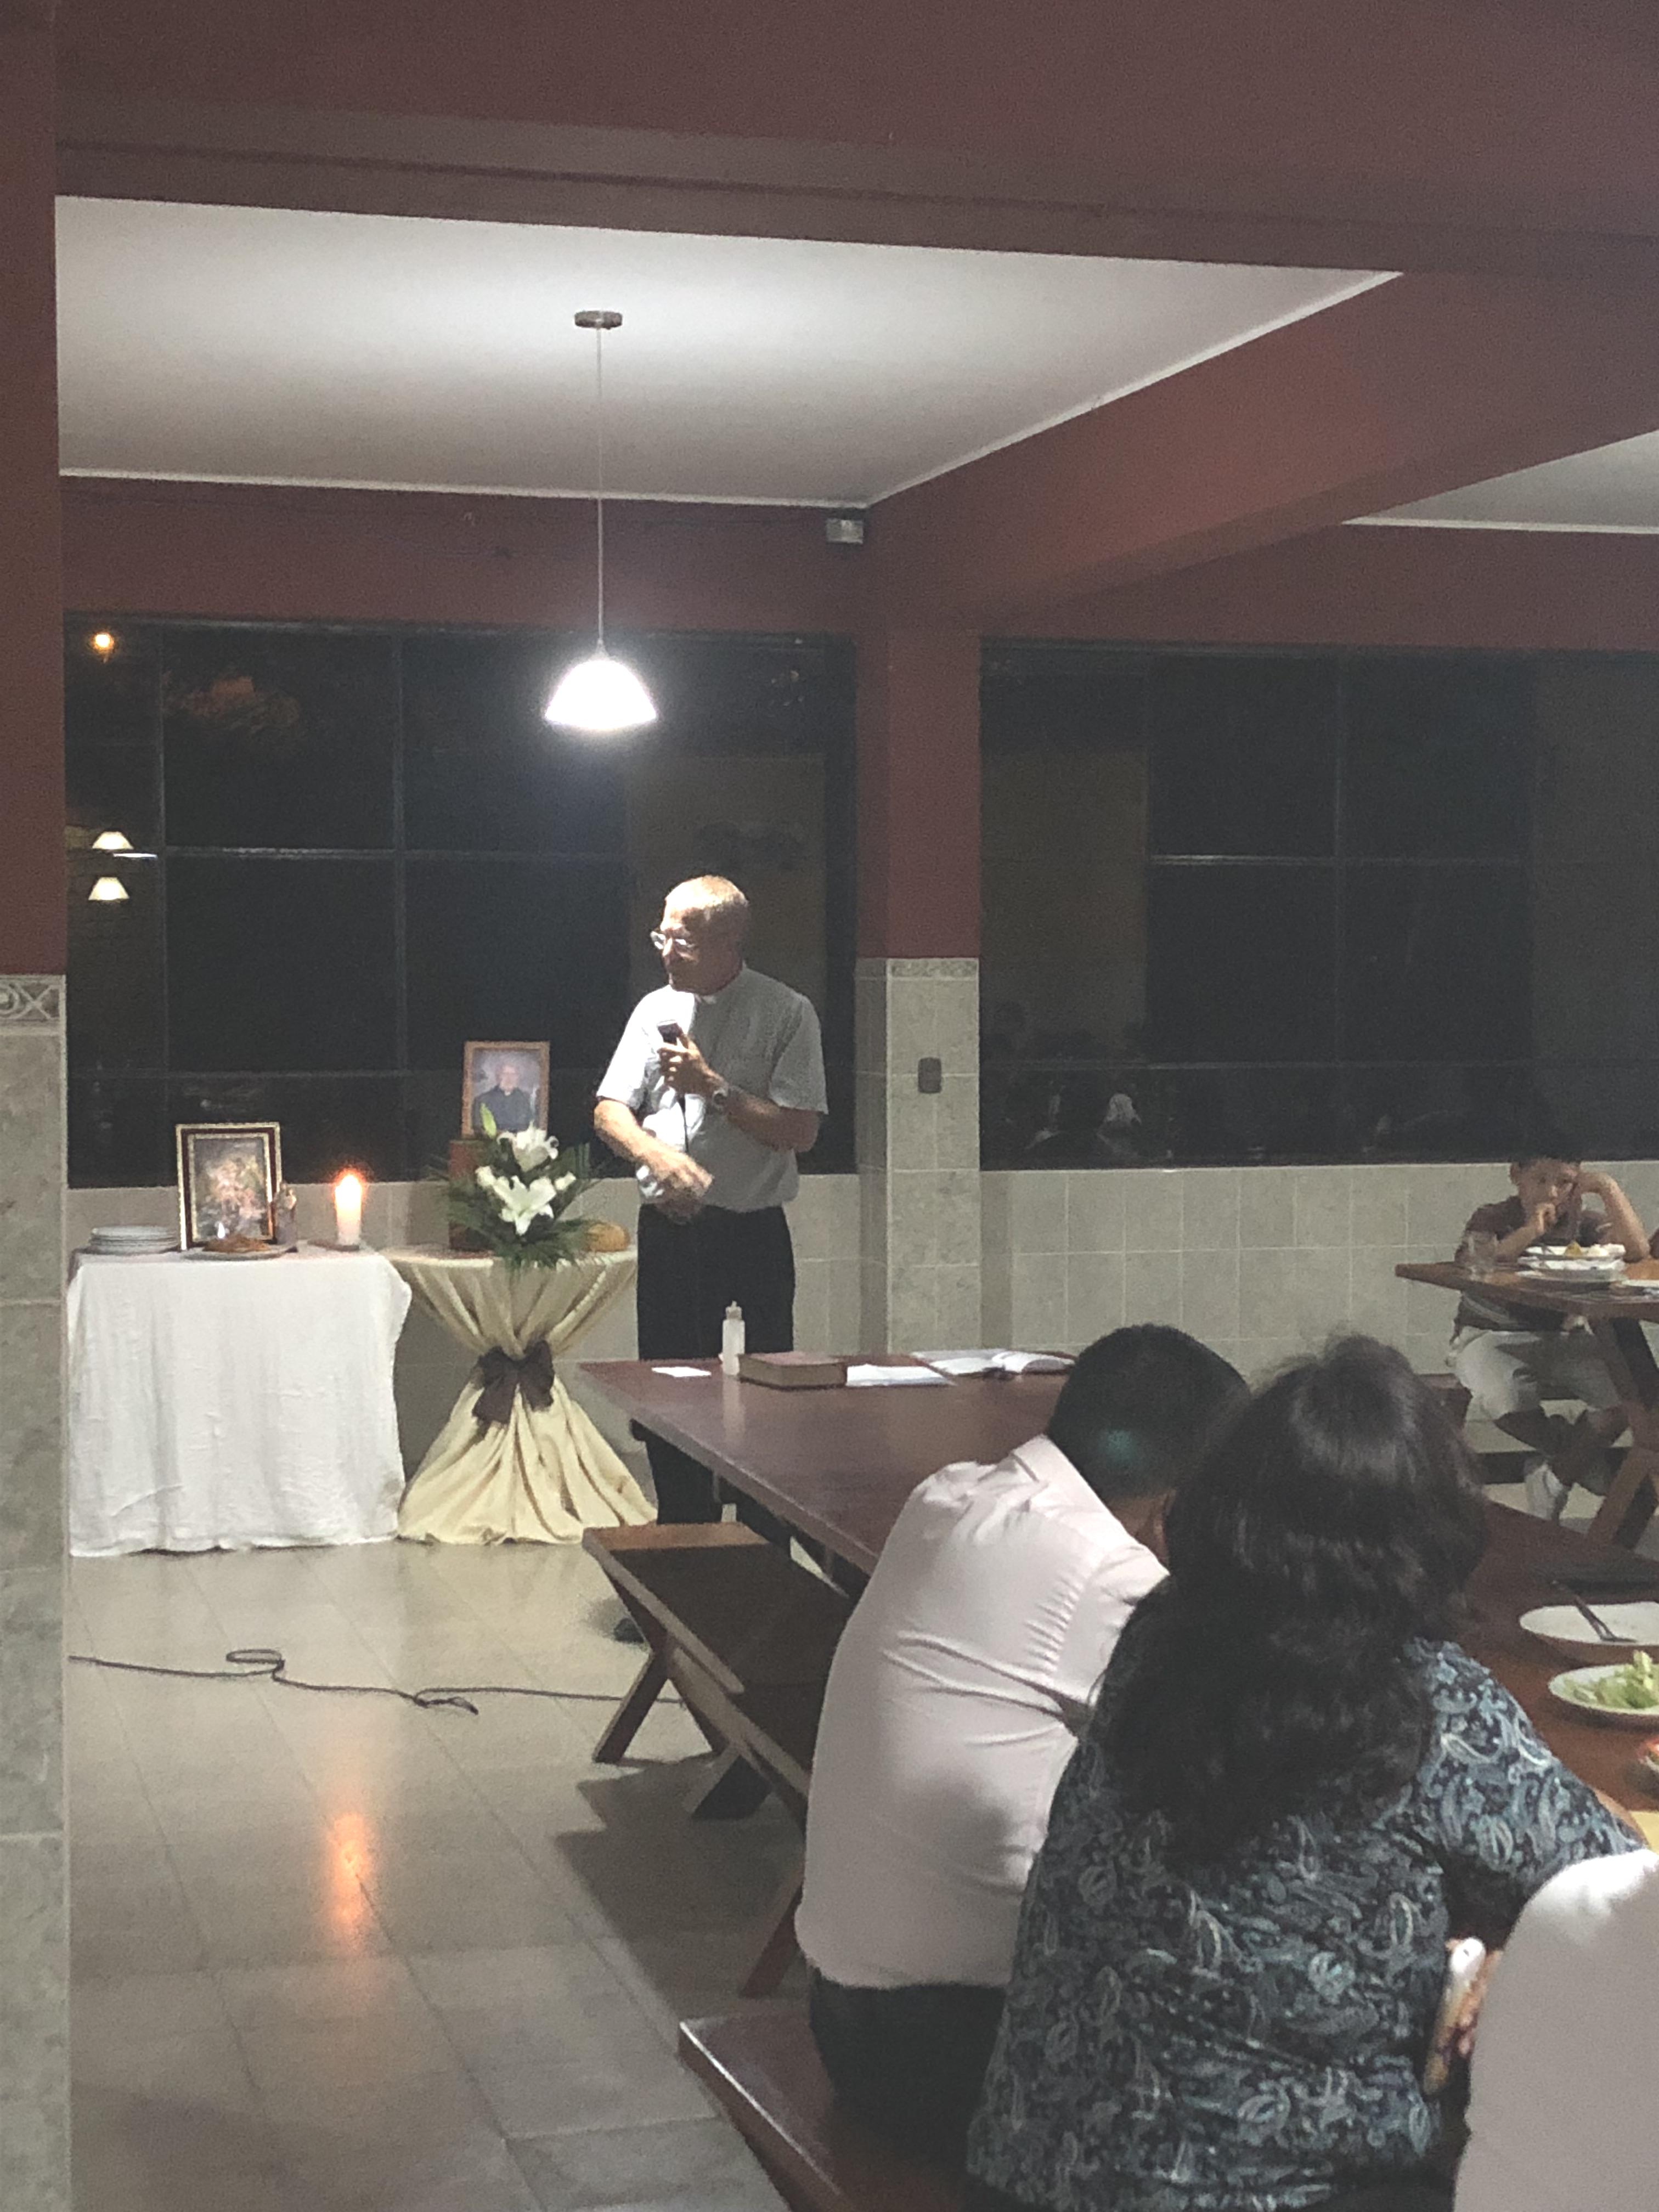 The children of Casa Hogar and friends whose lives were directly impacted by Padre Jose celebrated this special meal with a community dinner in Lurin, Peru. The evening commenced with a visit to Padre Jose's tomb.